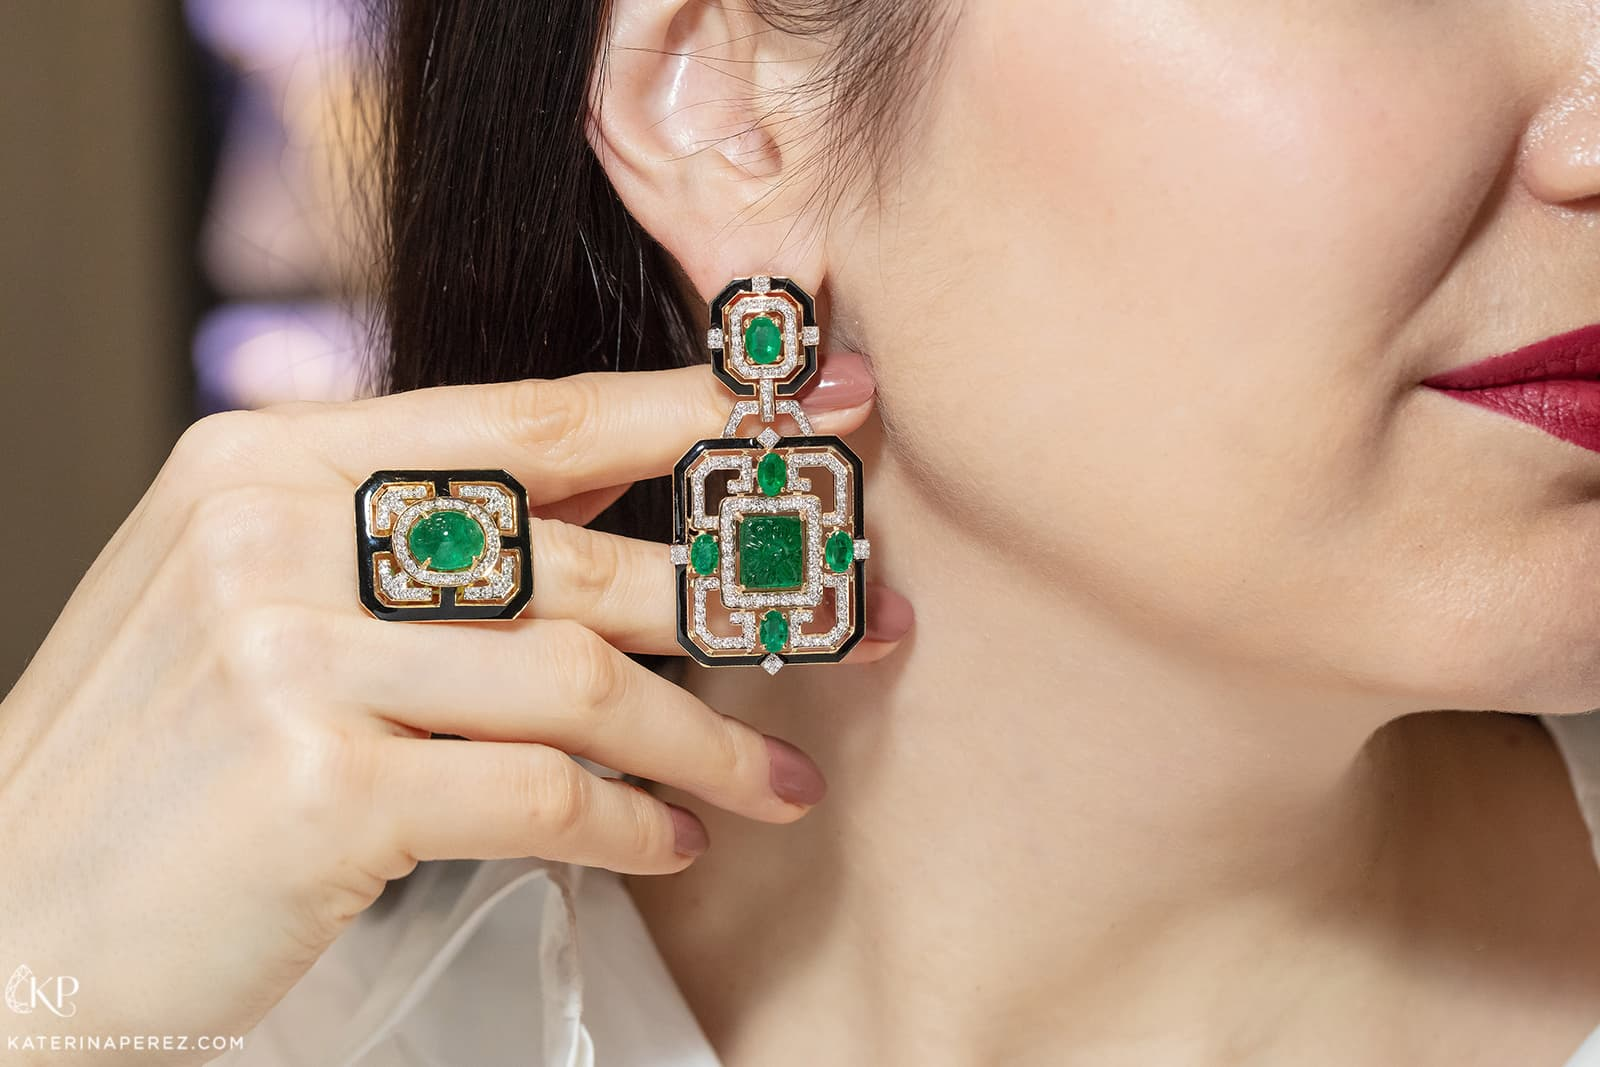 Exquisite Fine Jewellery earrings and ring with emeralds, diamonds and enamel in yellow gold